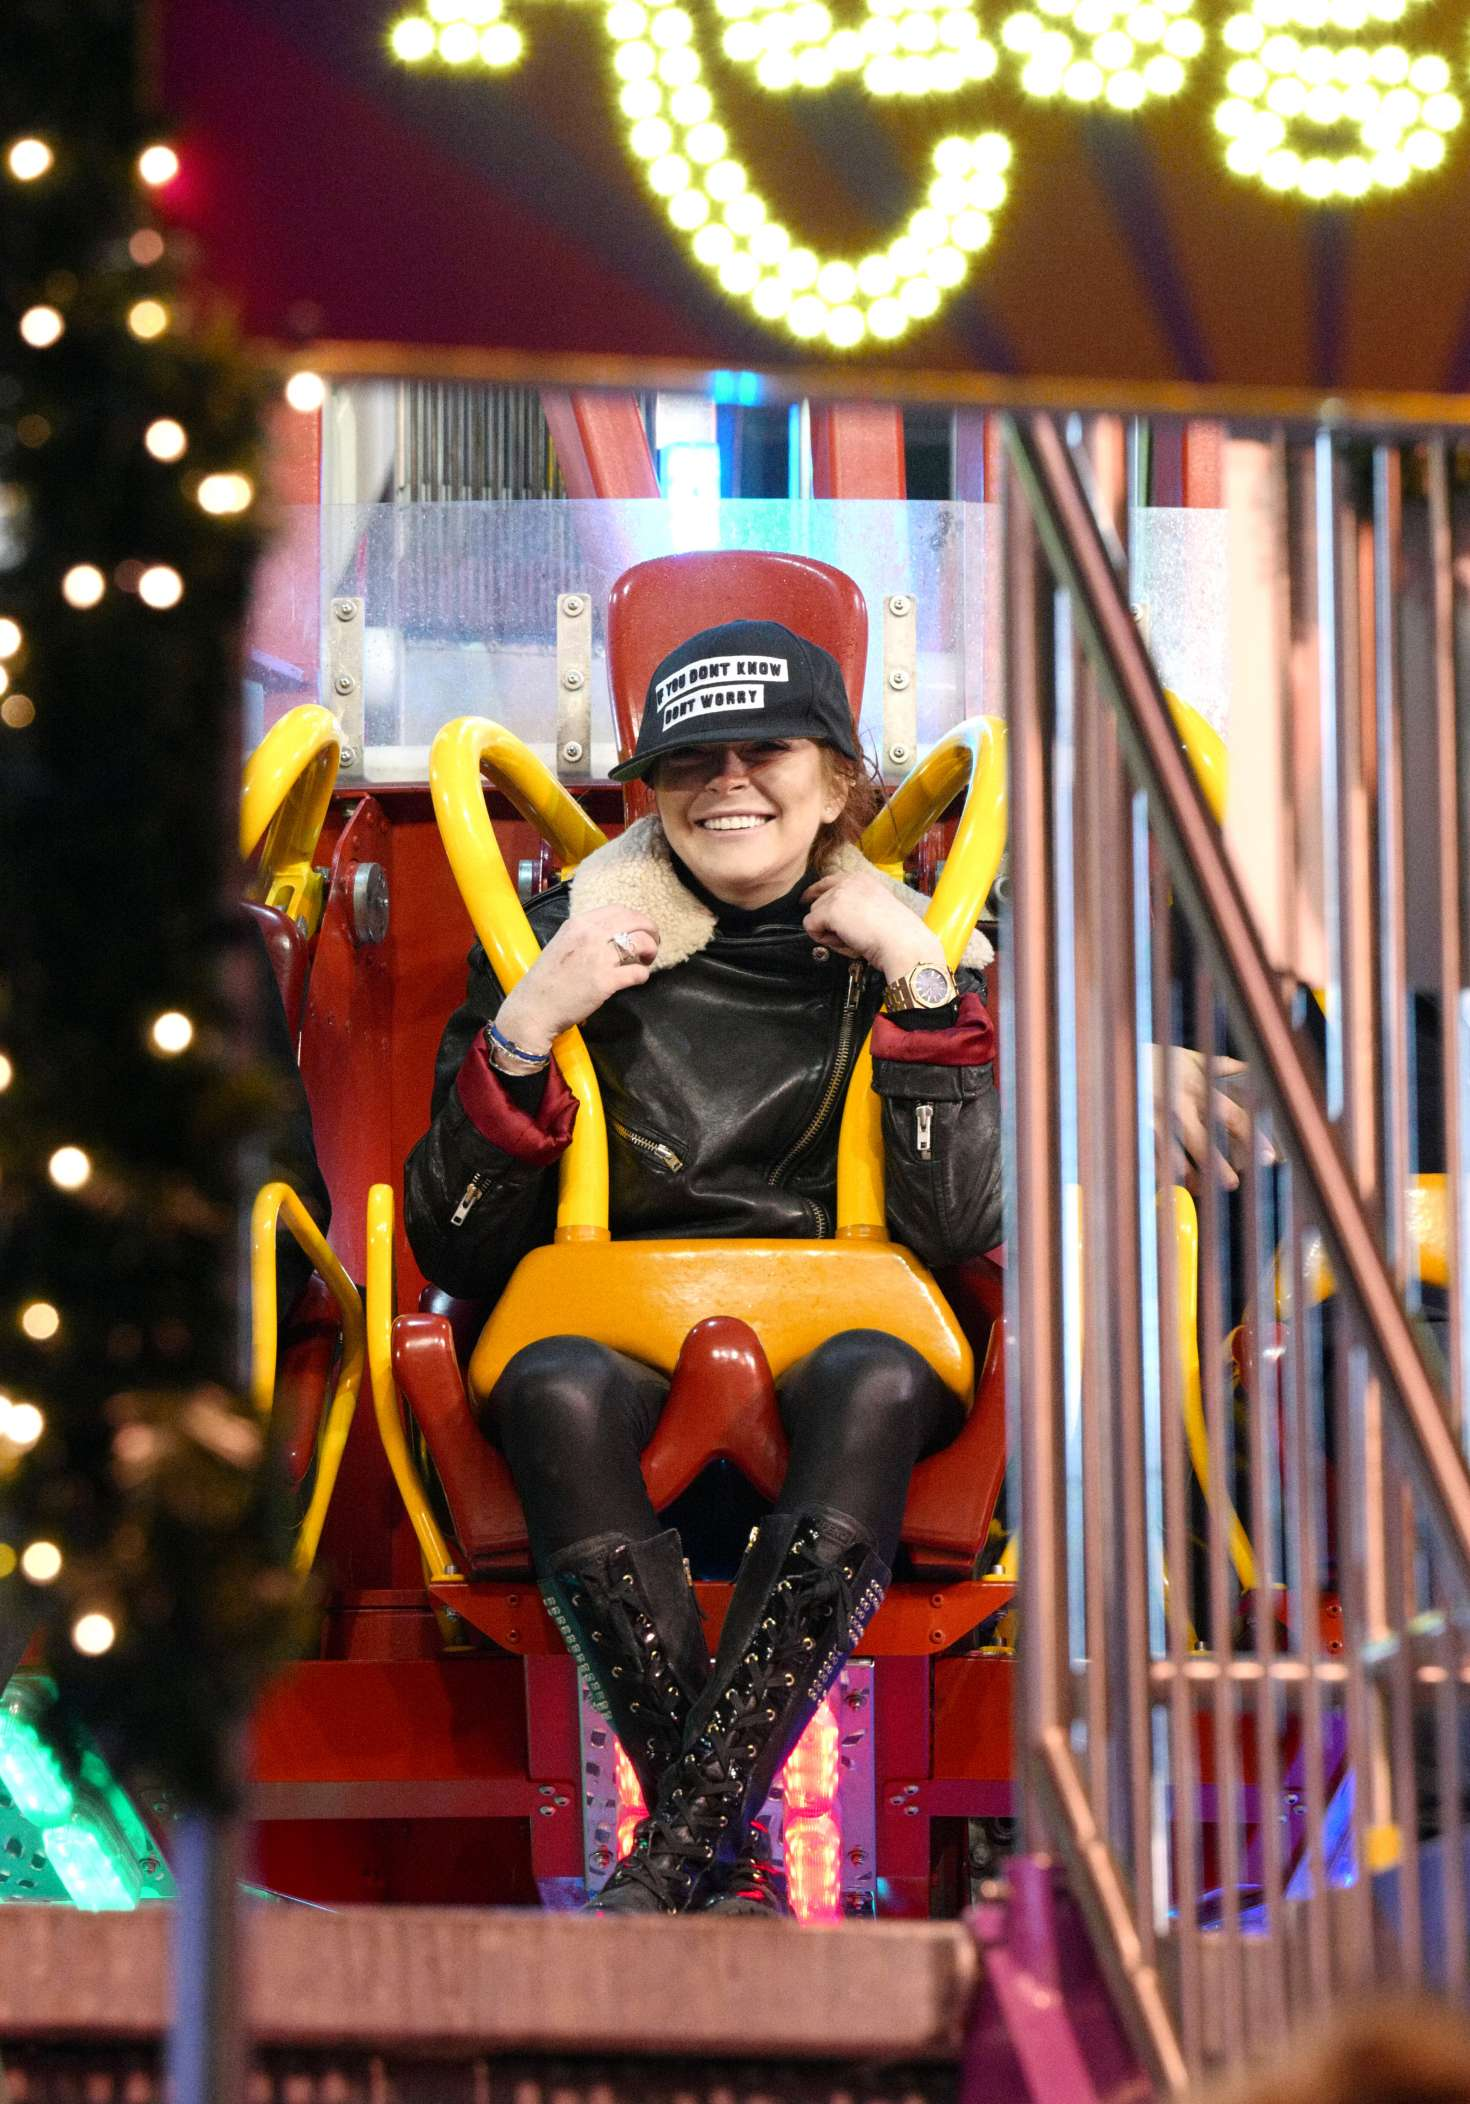 lindsay lohan at winter wonderland in hyde park london 11 20 2016